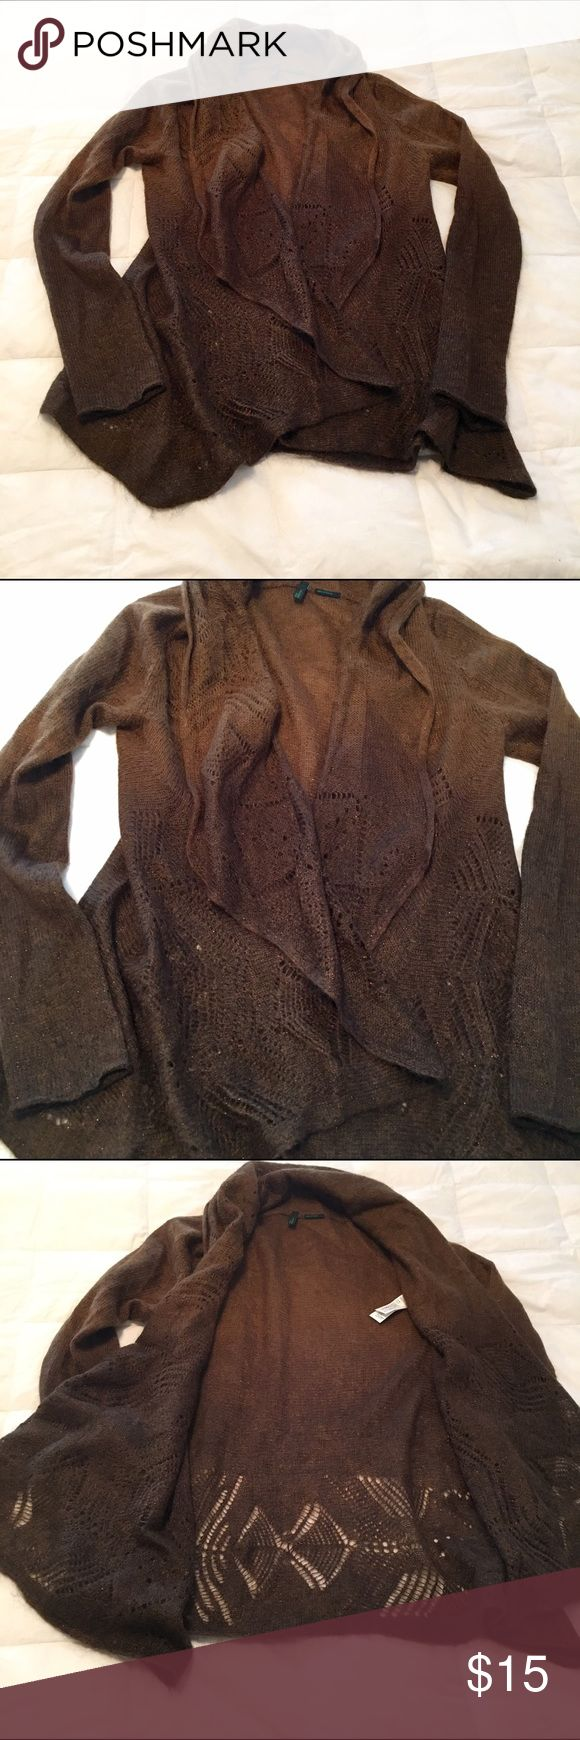 Benetton wrap sweater Brown ombré wrap-style sweater from Benetton. XS. Benetton Sweaters Shrugs & Ponchos